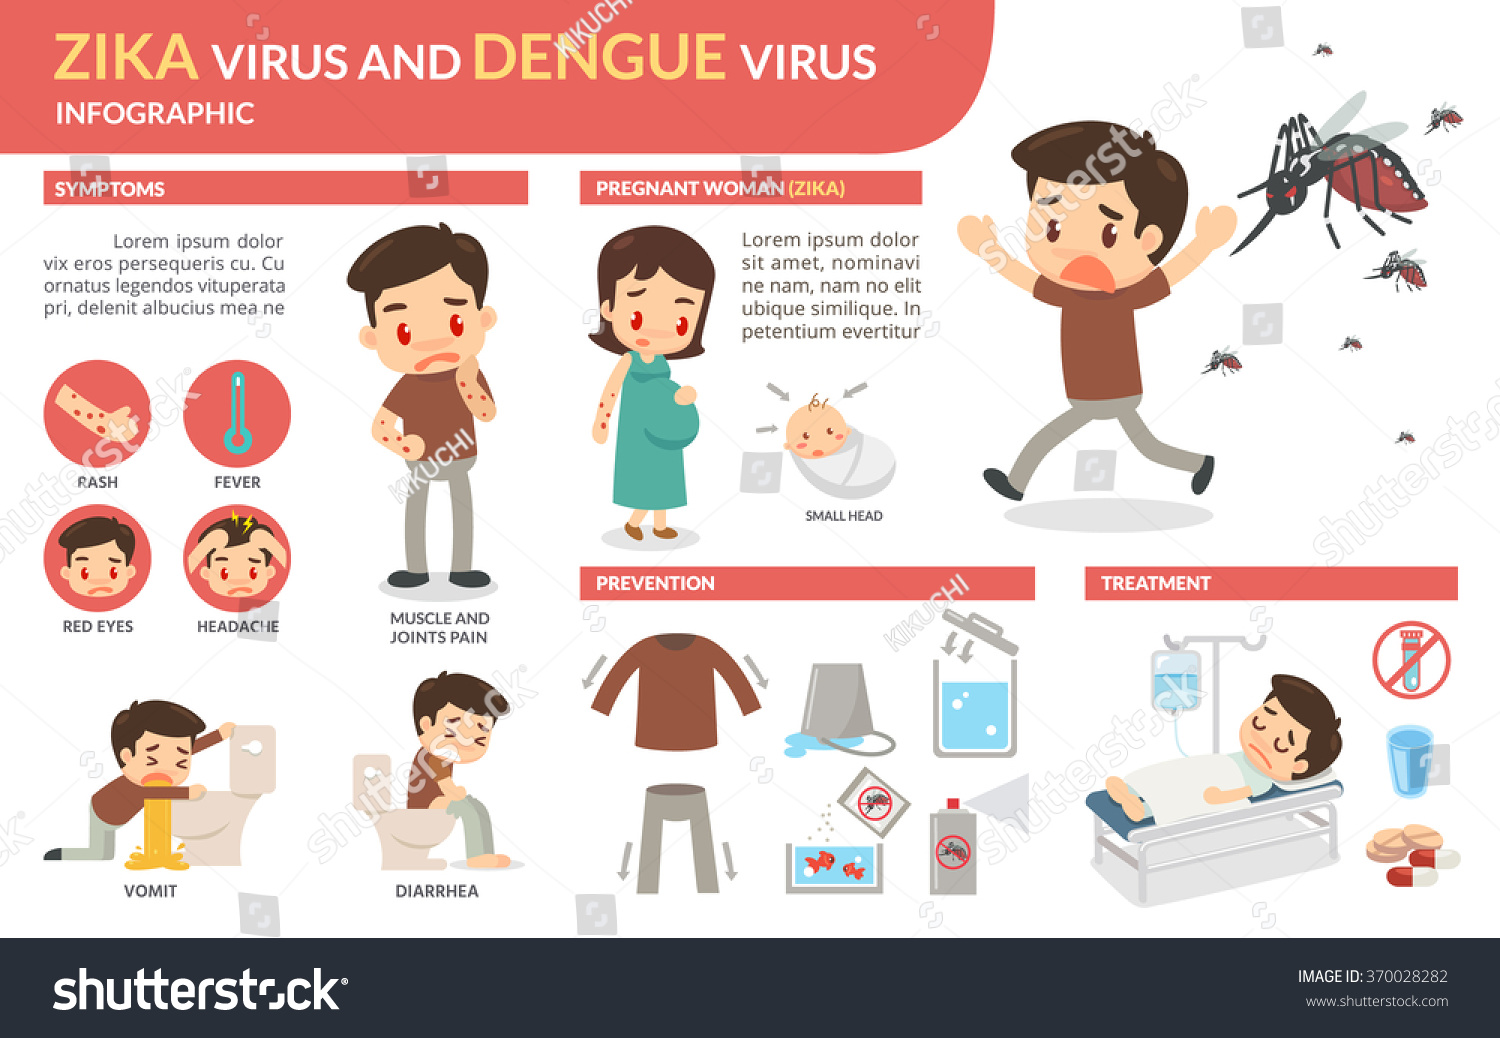 zika virus and dengue virus infographic  vector flat design